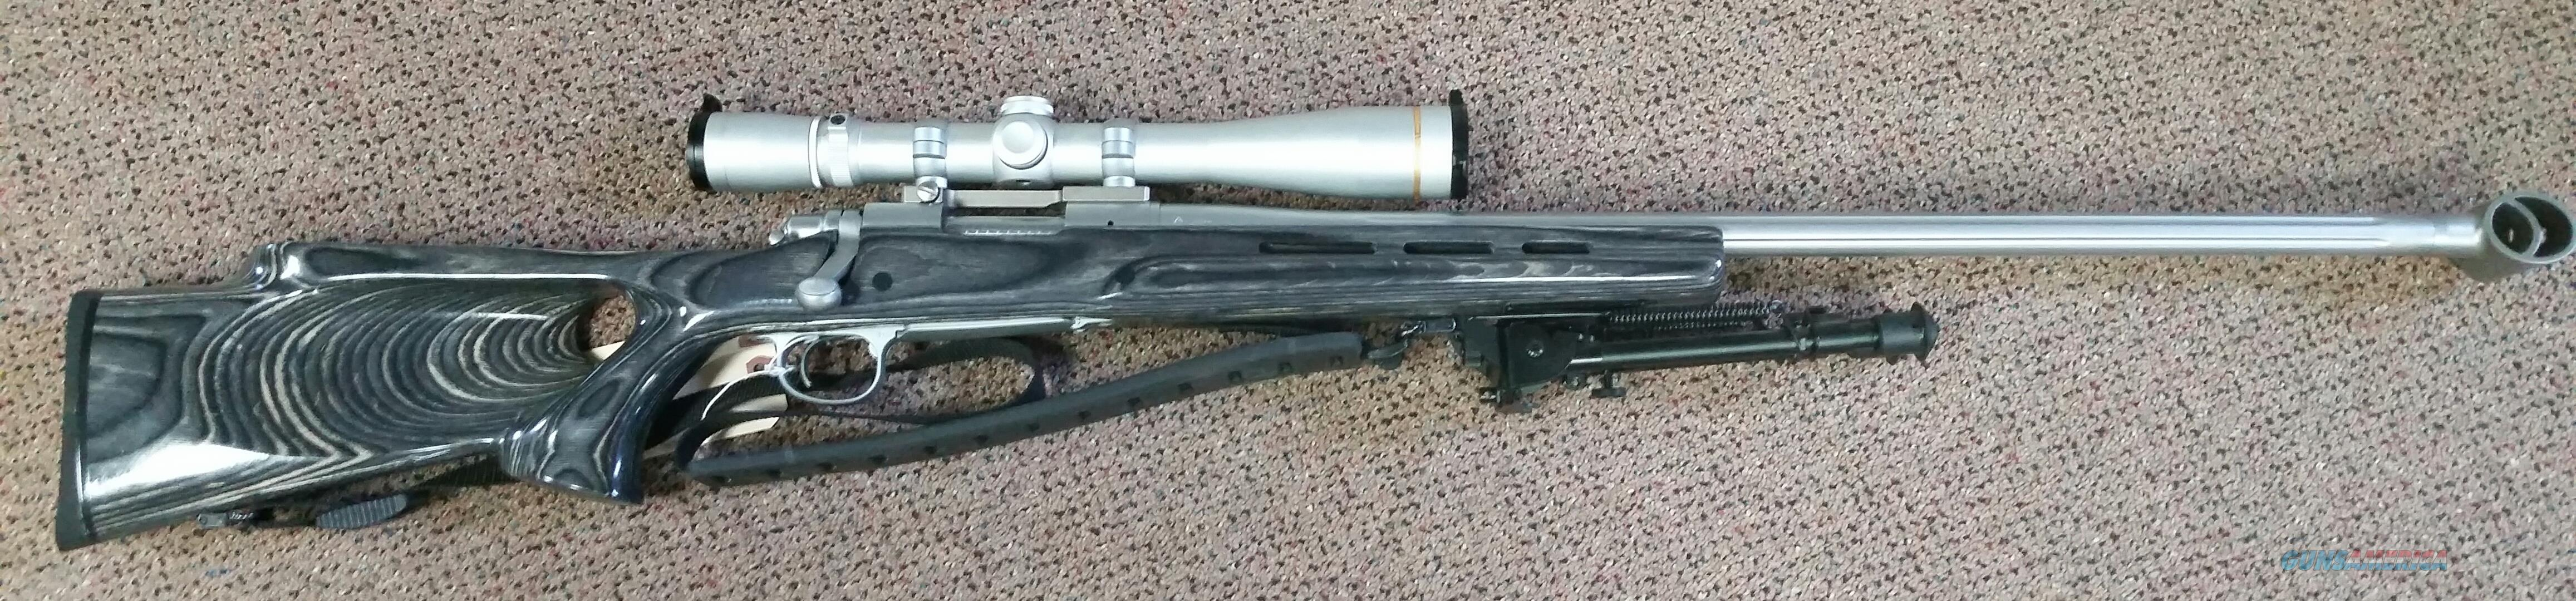 Remington 700 Varmint SF .308 Win  Guns > Rifles > Remington Rifles - Modern > Model 700 > Sporting